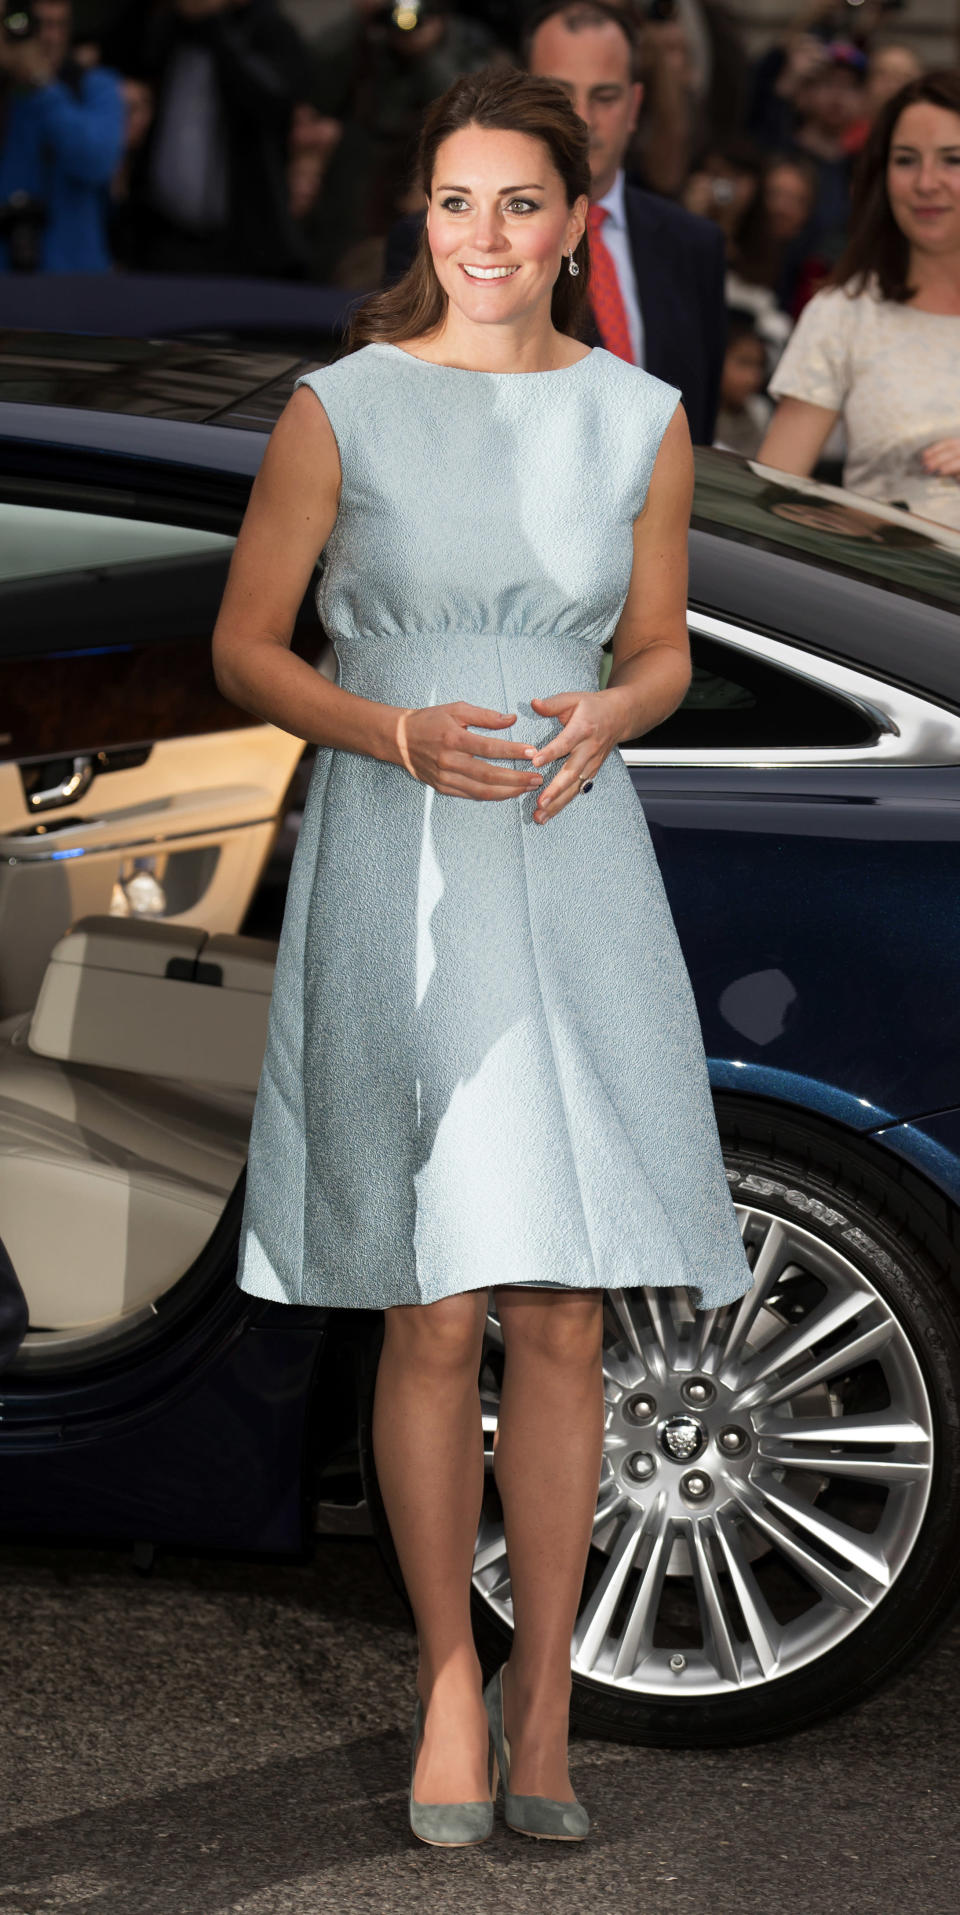 <p>In April 2013, the Duchess of Cambridge visited the Art Room at the National Portrait Gallery in a sleeveless dress by Emilia Wickstead. <em>[Photo: Getty]</em> </p>